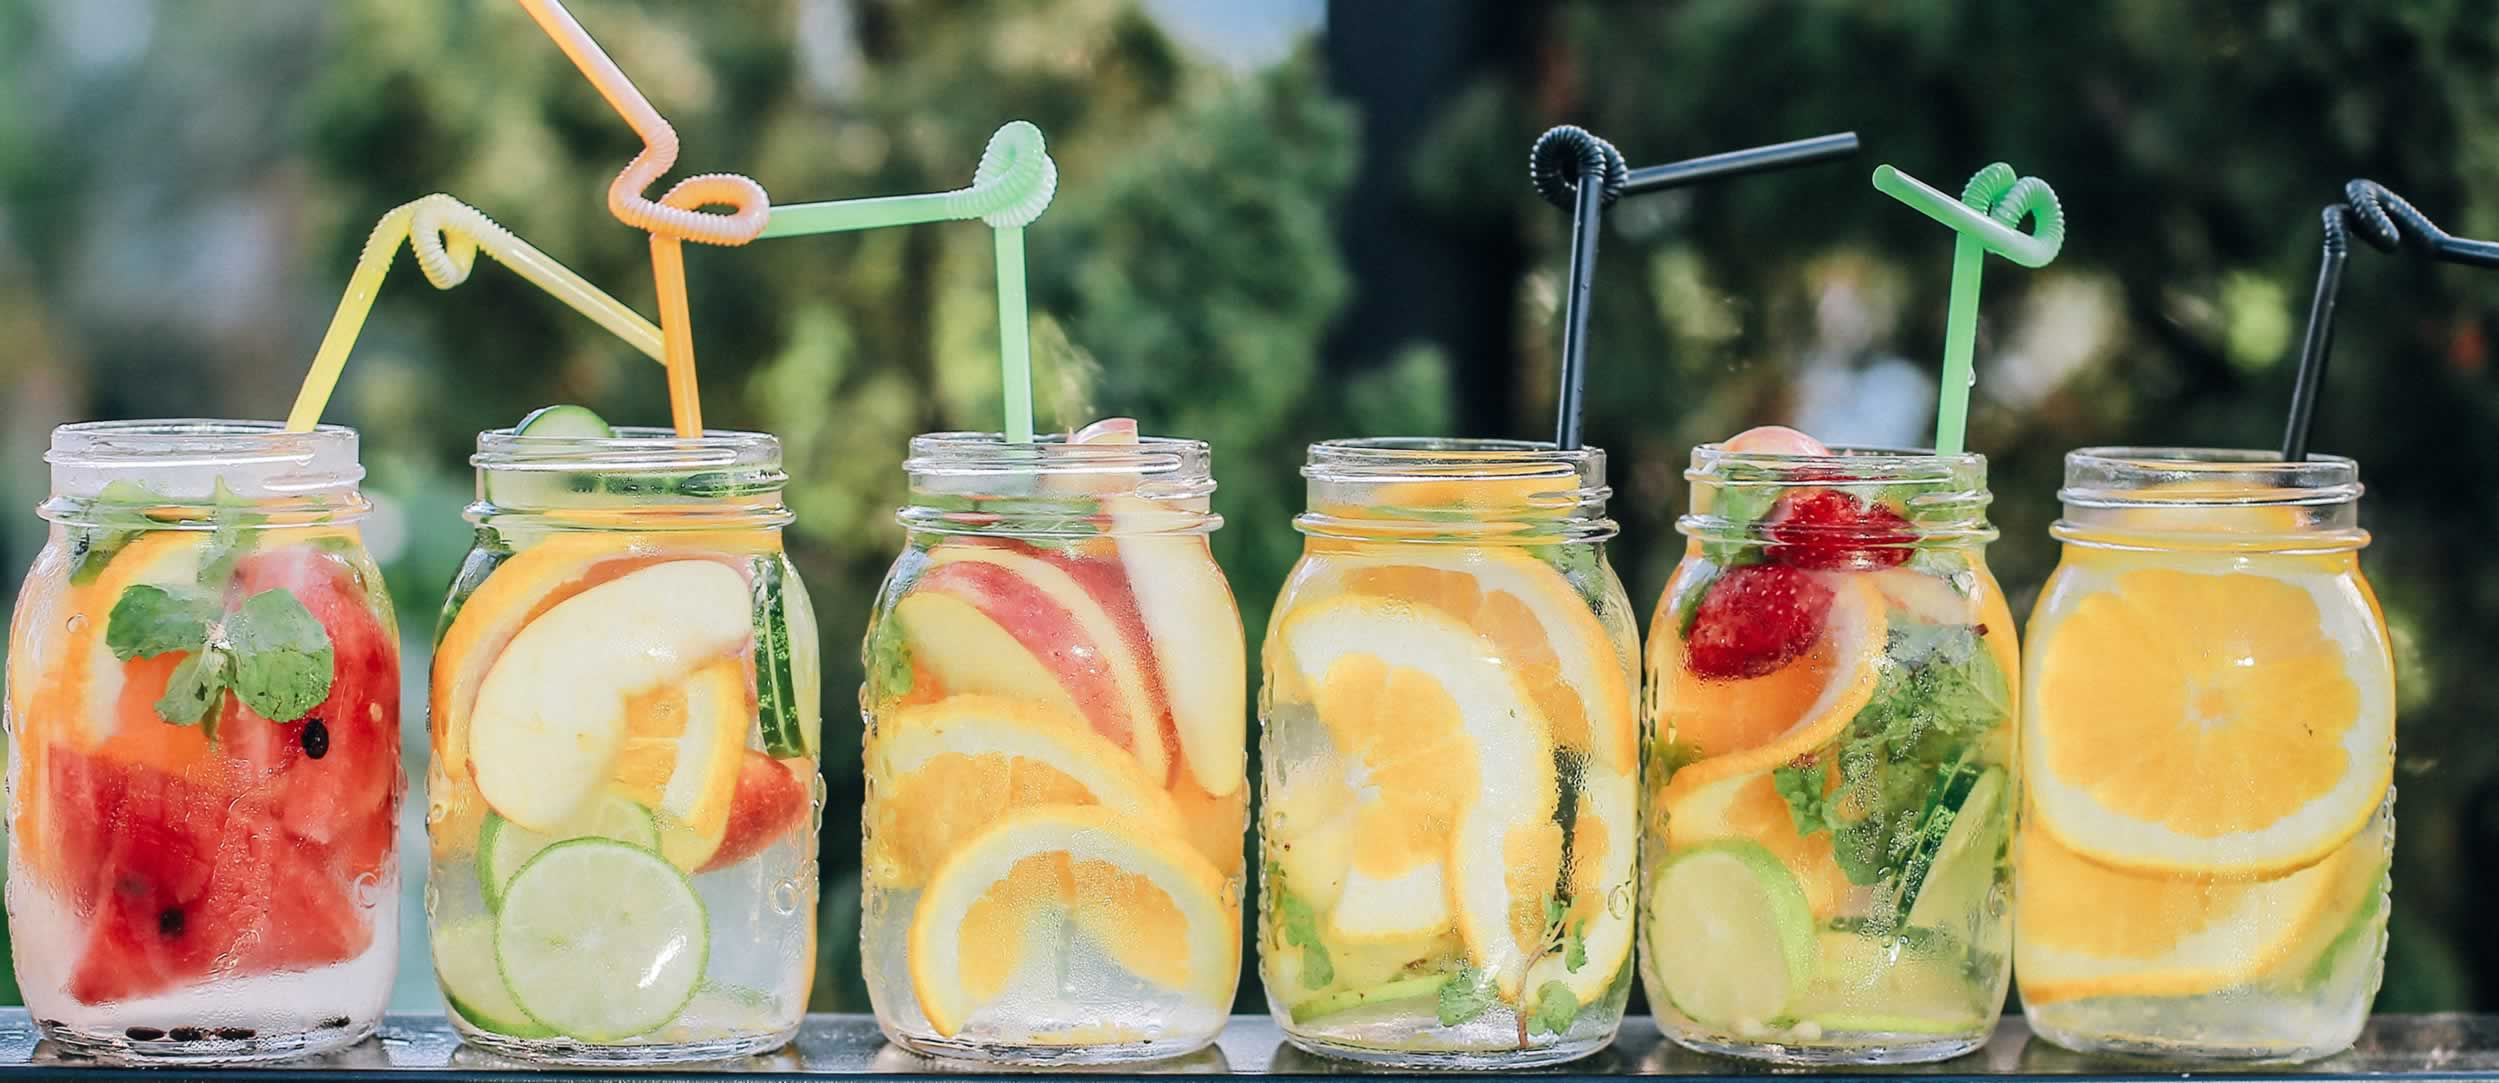 Cultivating trust at the Produce Marketing Association - Unsplash photo of fresh fruit in ice water jars by Kaizen Nguyễn